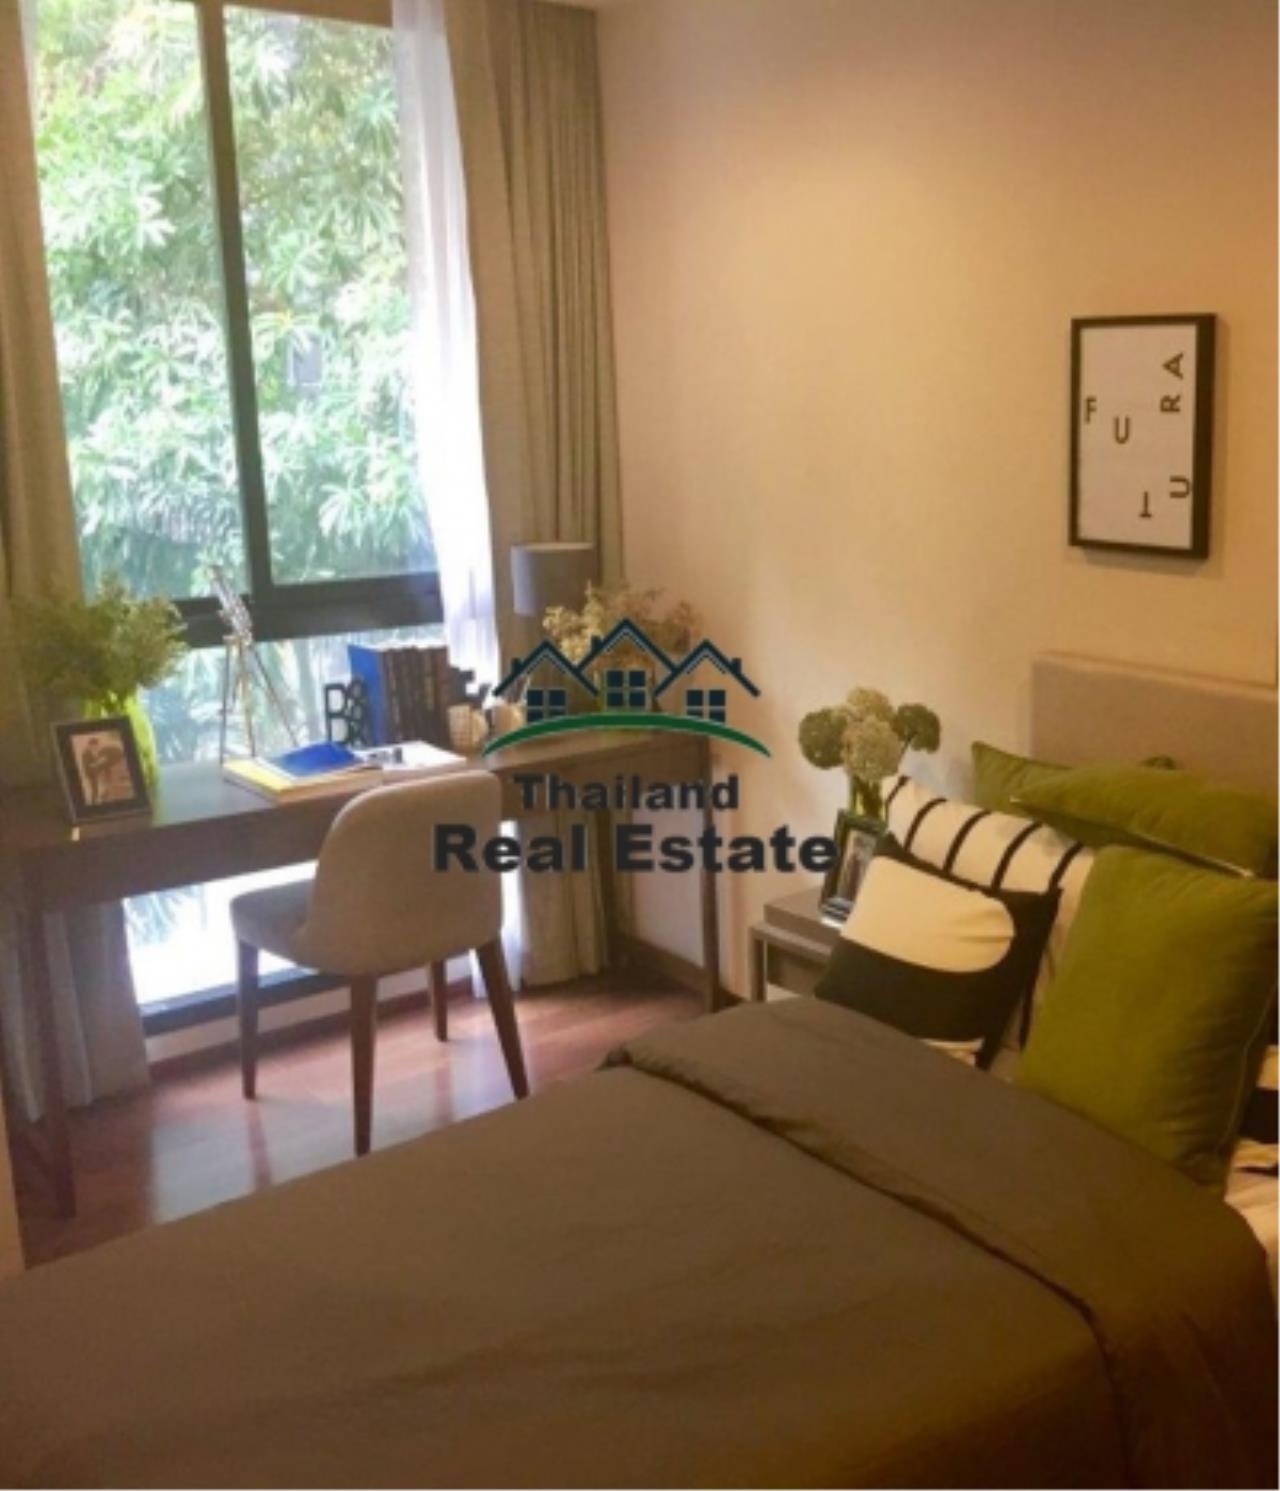 Thailand Real Estate Agency's 2 Bedroom Condo at The Hudson near BTS Chong Nonsi (12625) 4